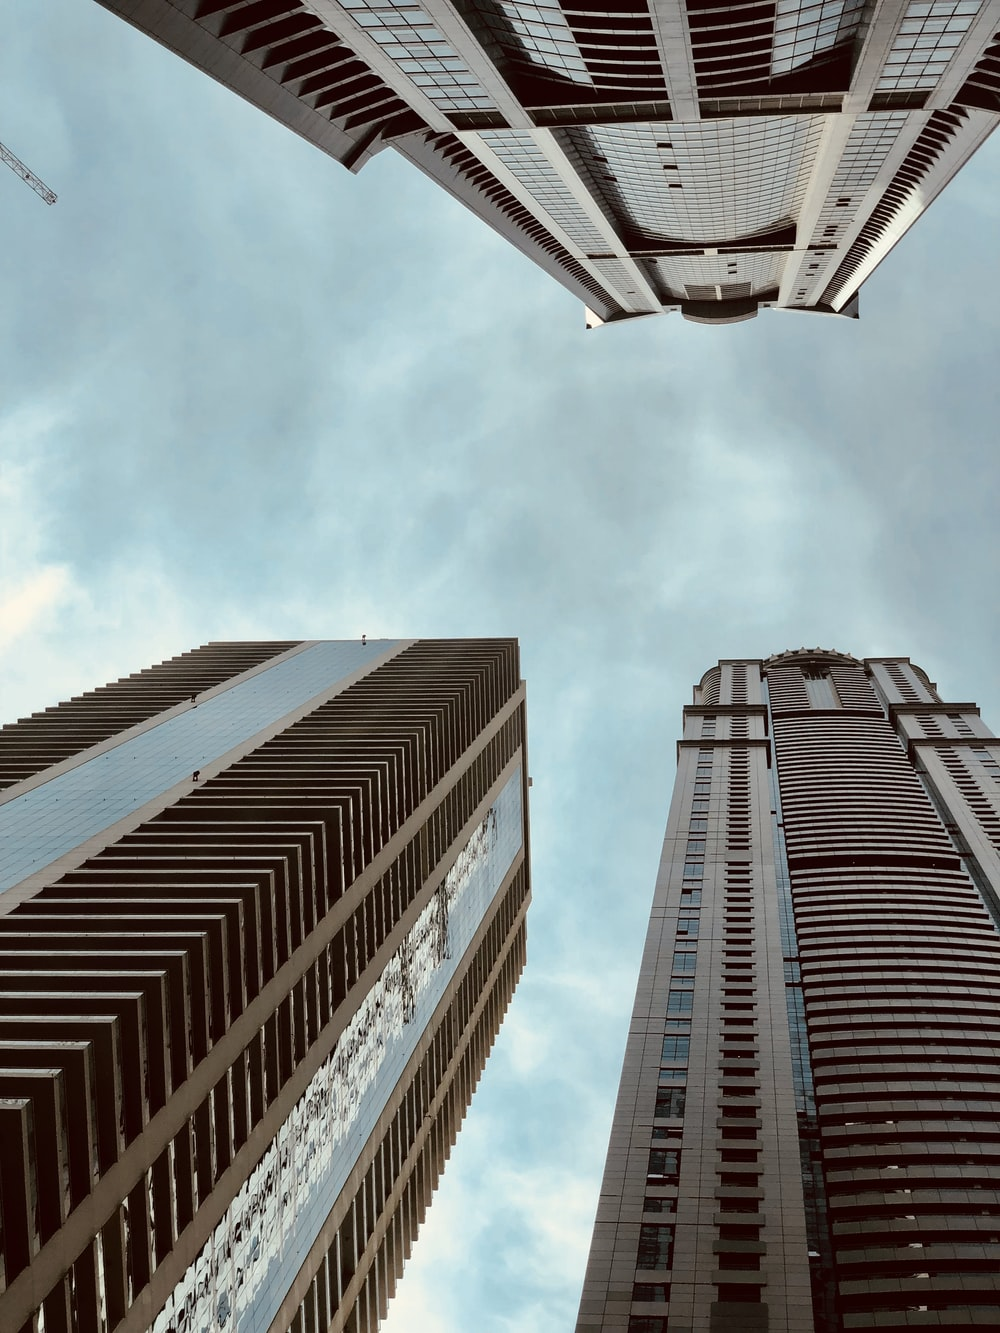 worm's eye view photography of high rise buildings